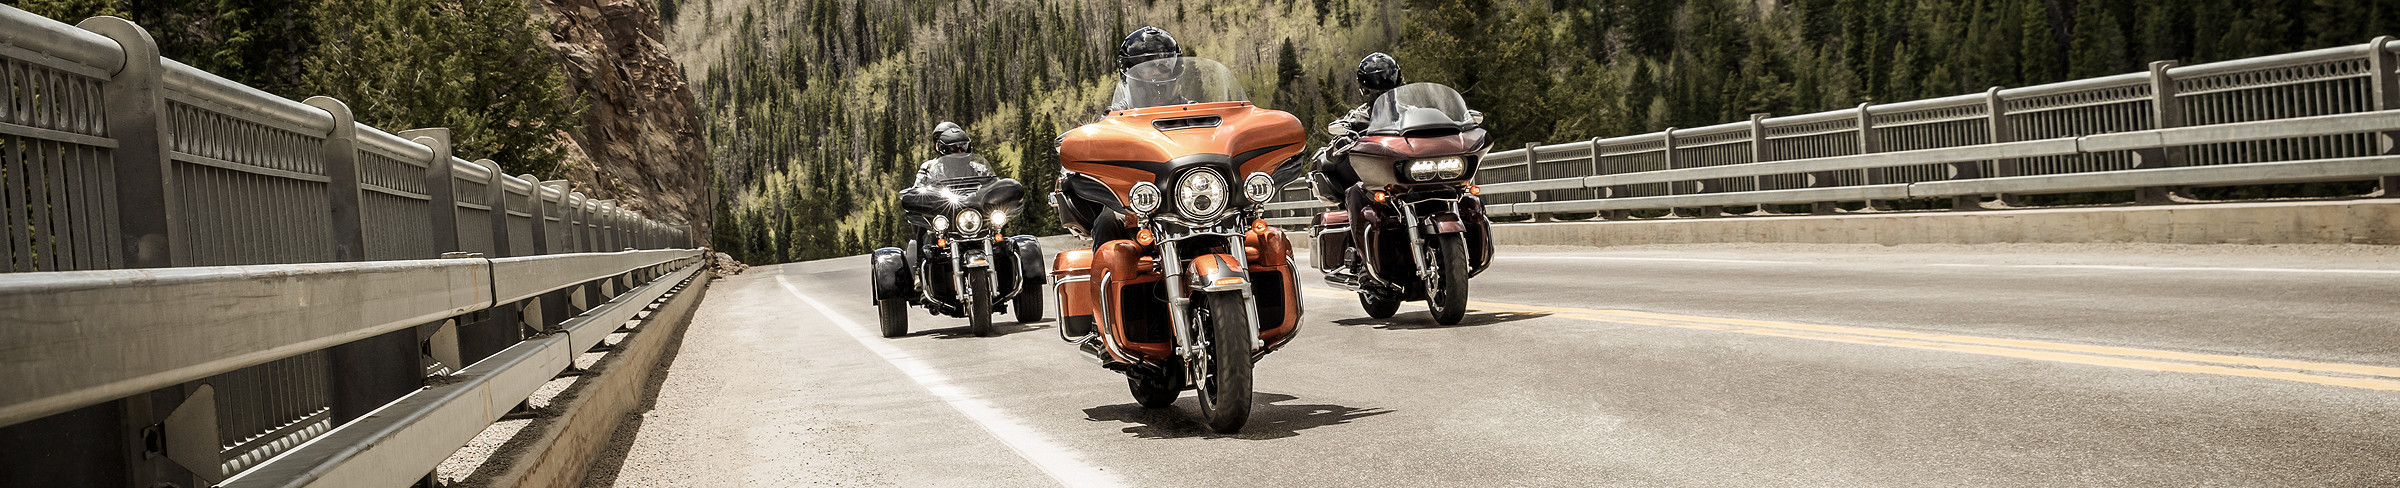 Diamondback Harley-Davidson® Photo Gallery